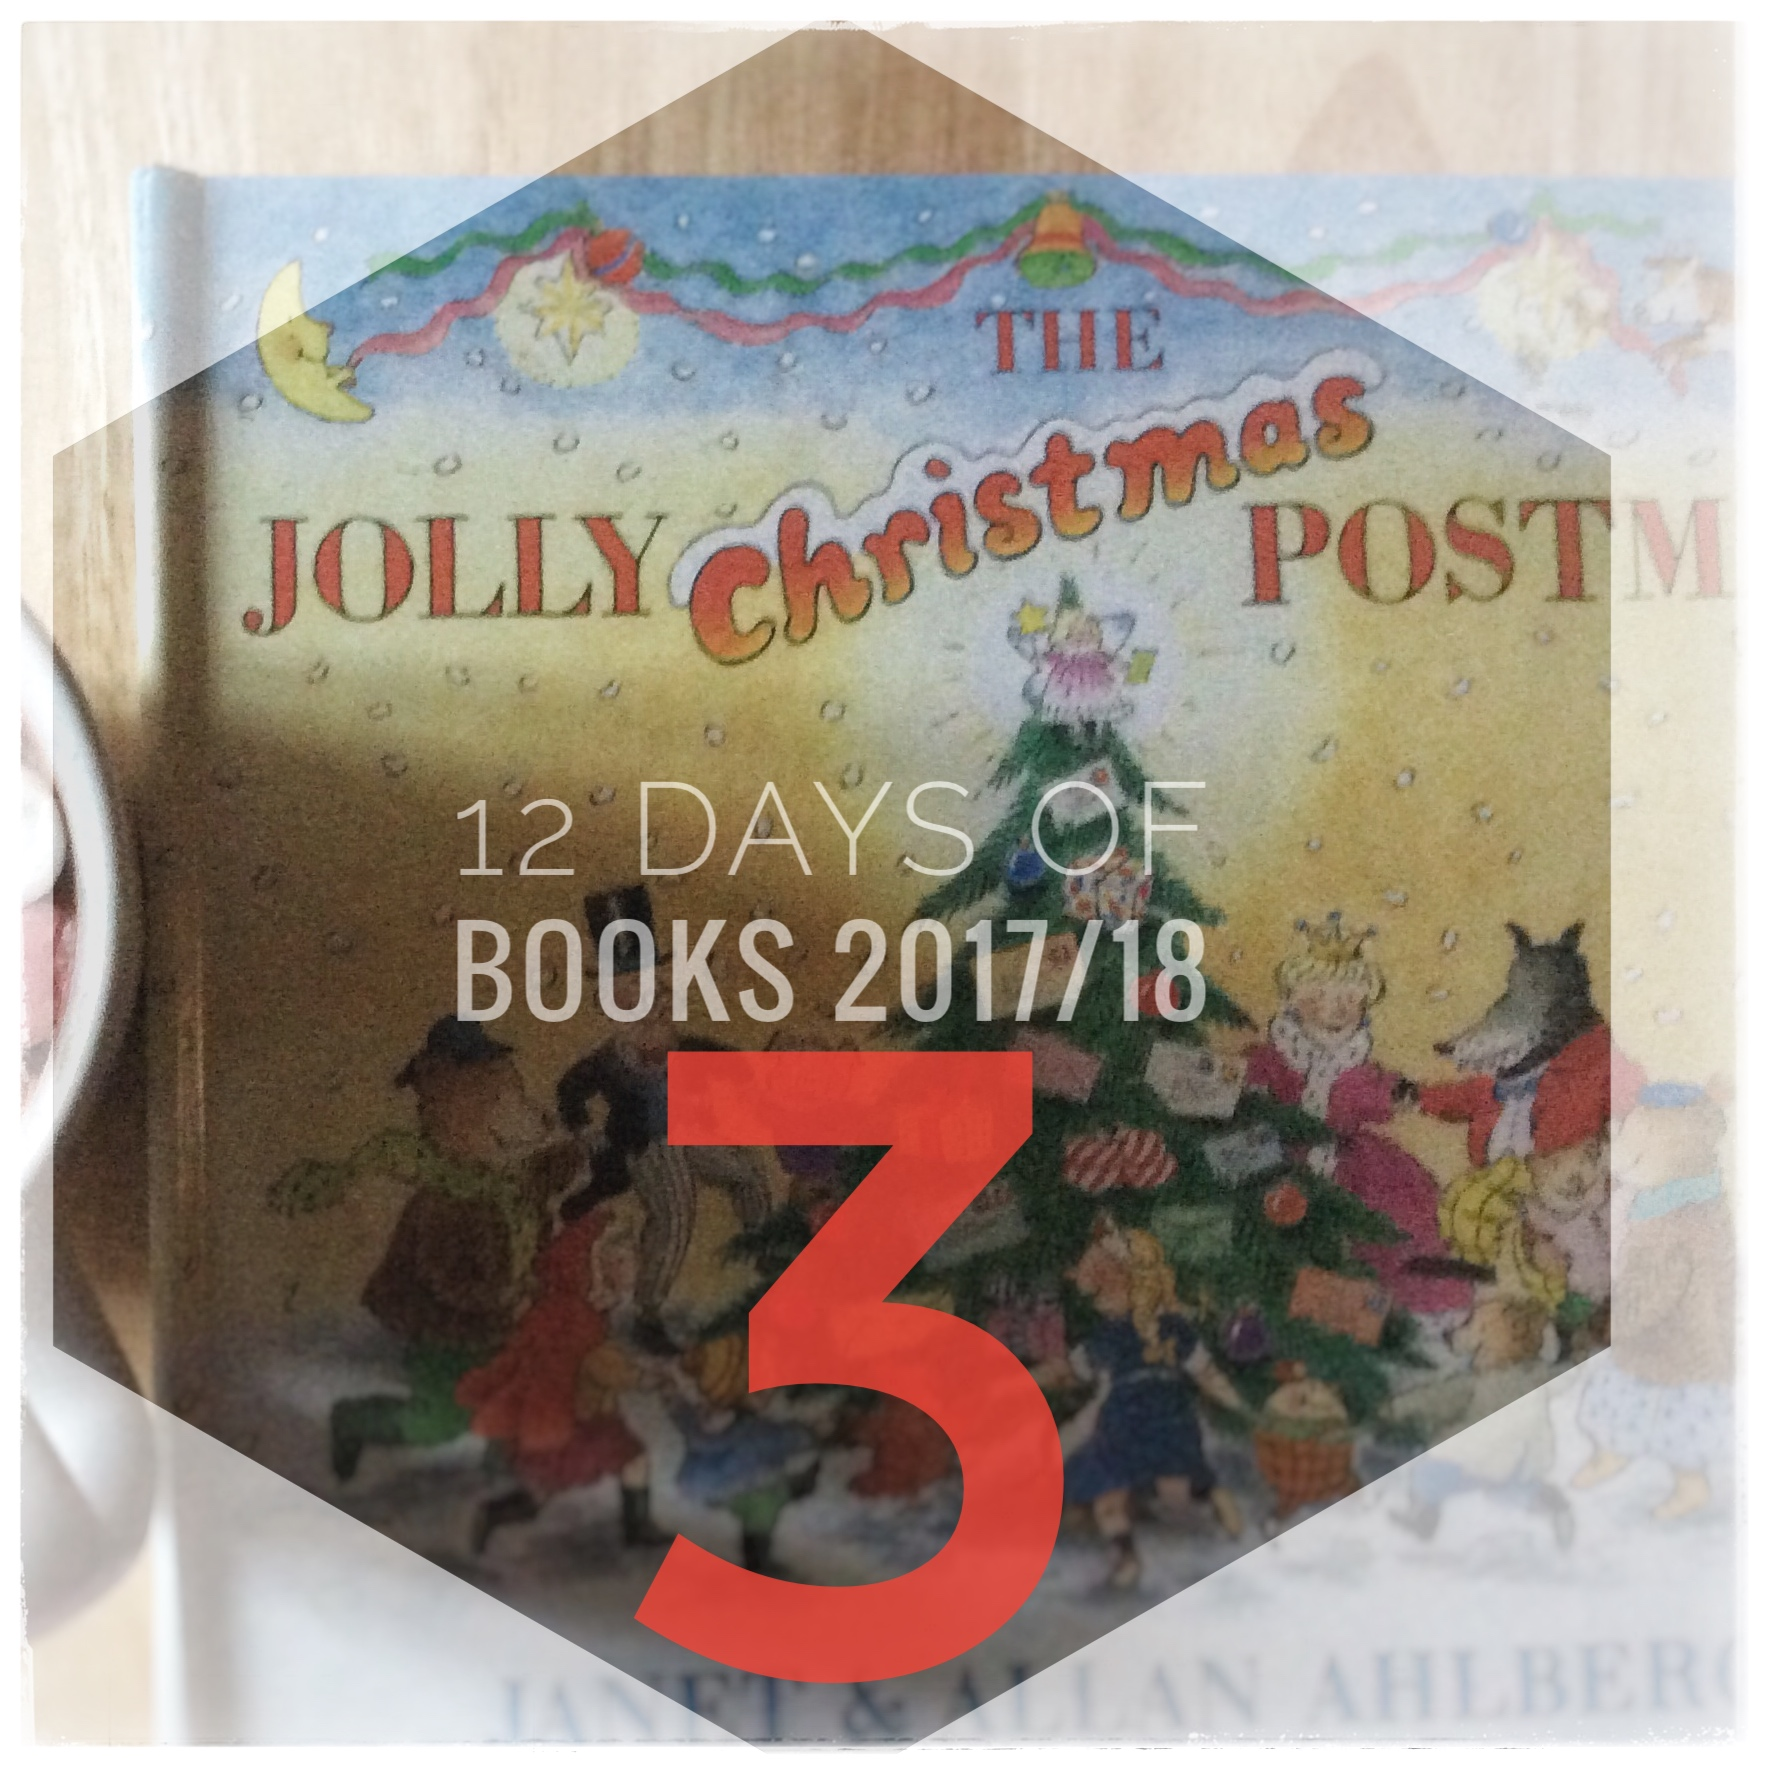 12 Days of Books 2017/18: The Jolly Christmas Postman | The ...